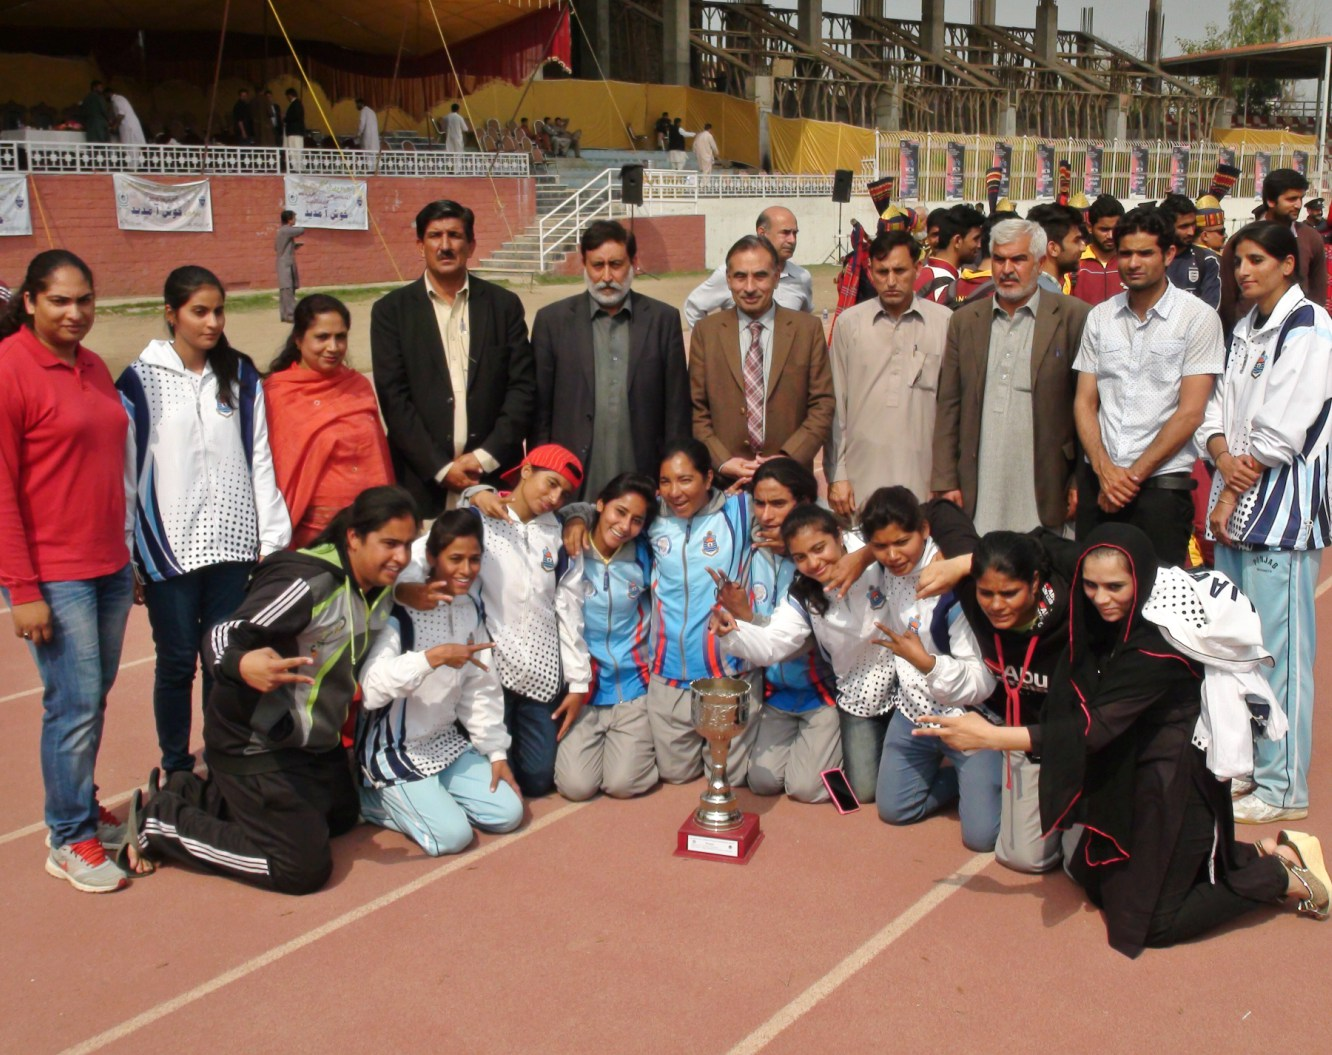 Vice Chancellor UoP Prof. Dr. Muhammad Rasul Jan in a group photo with participants of Inter University Sports event arranged by the UoP